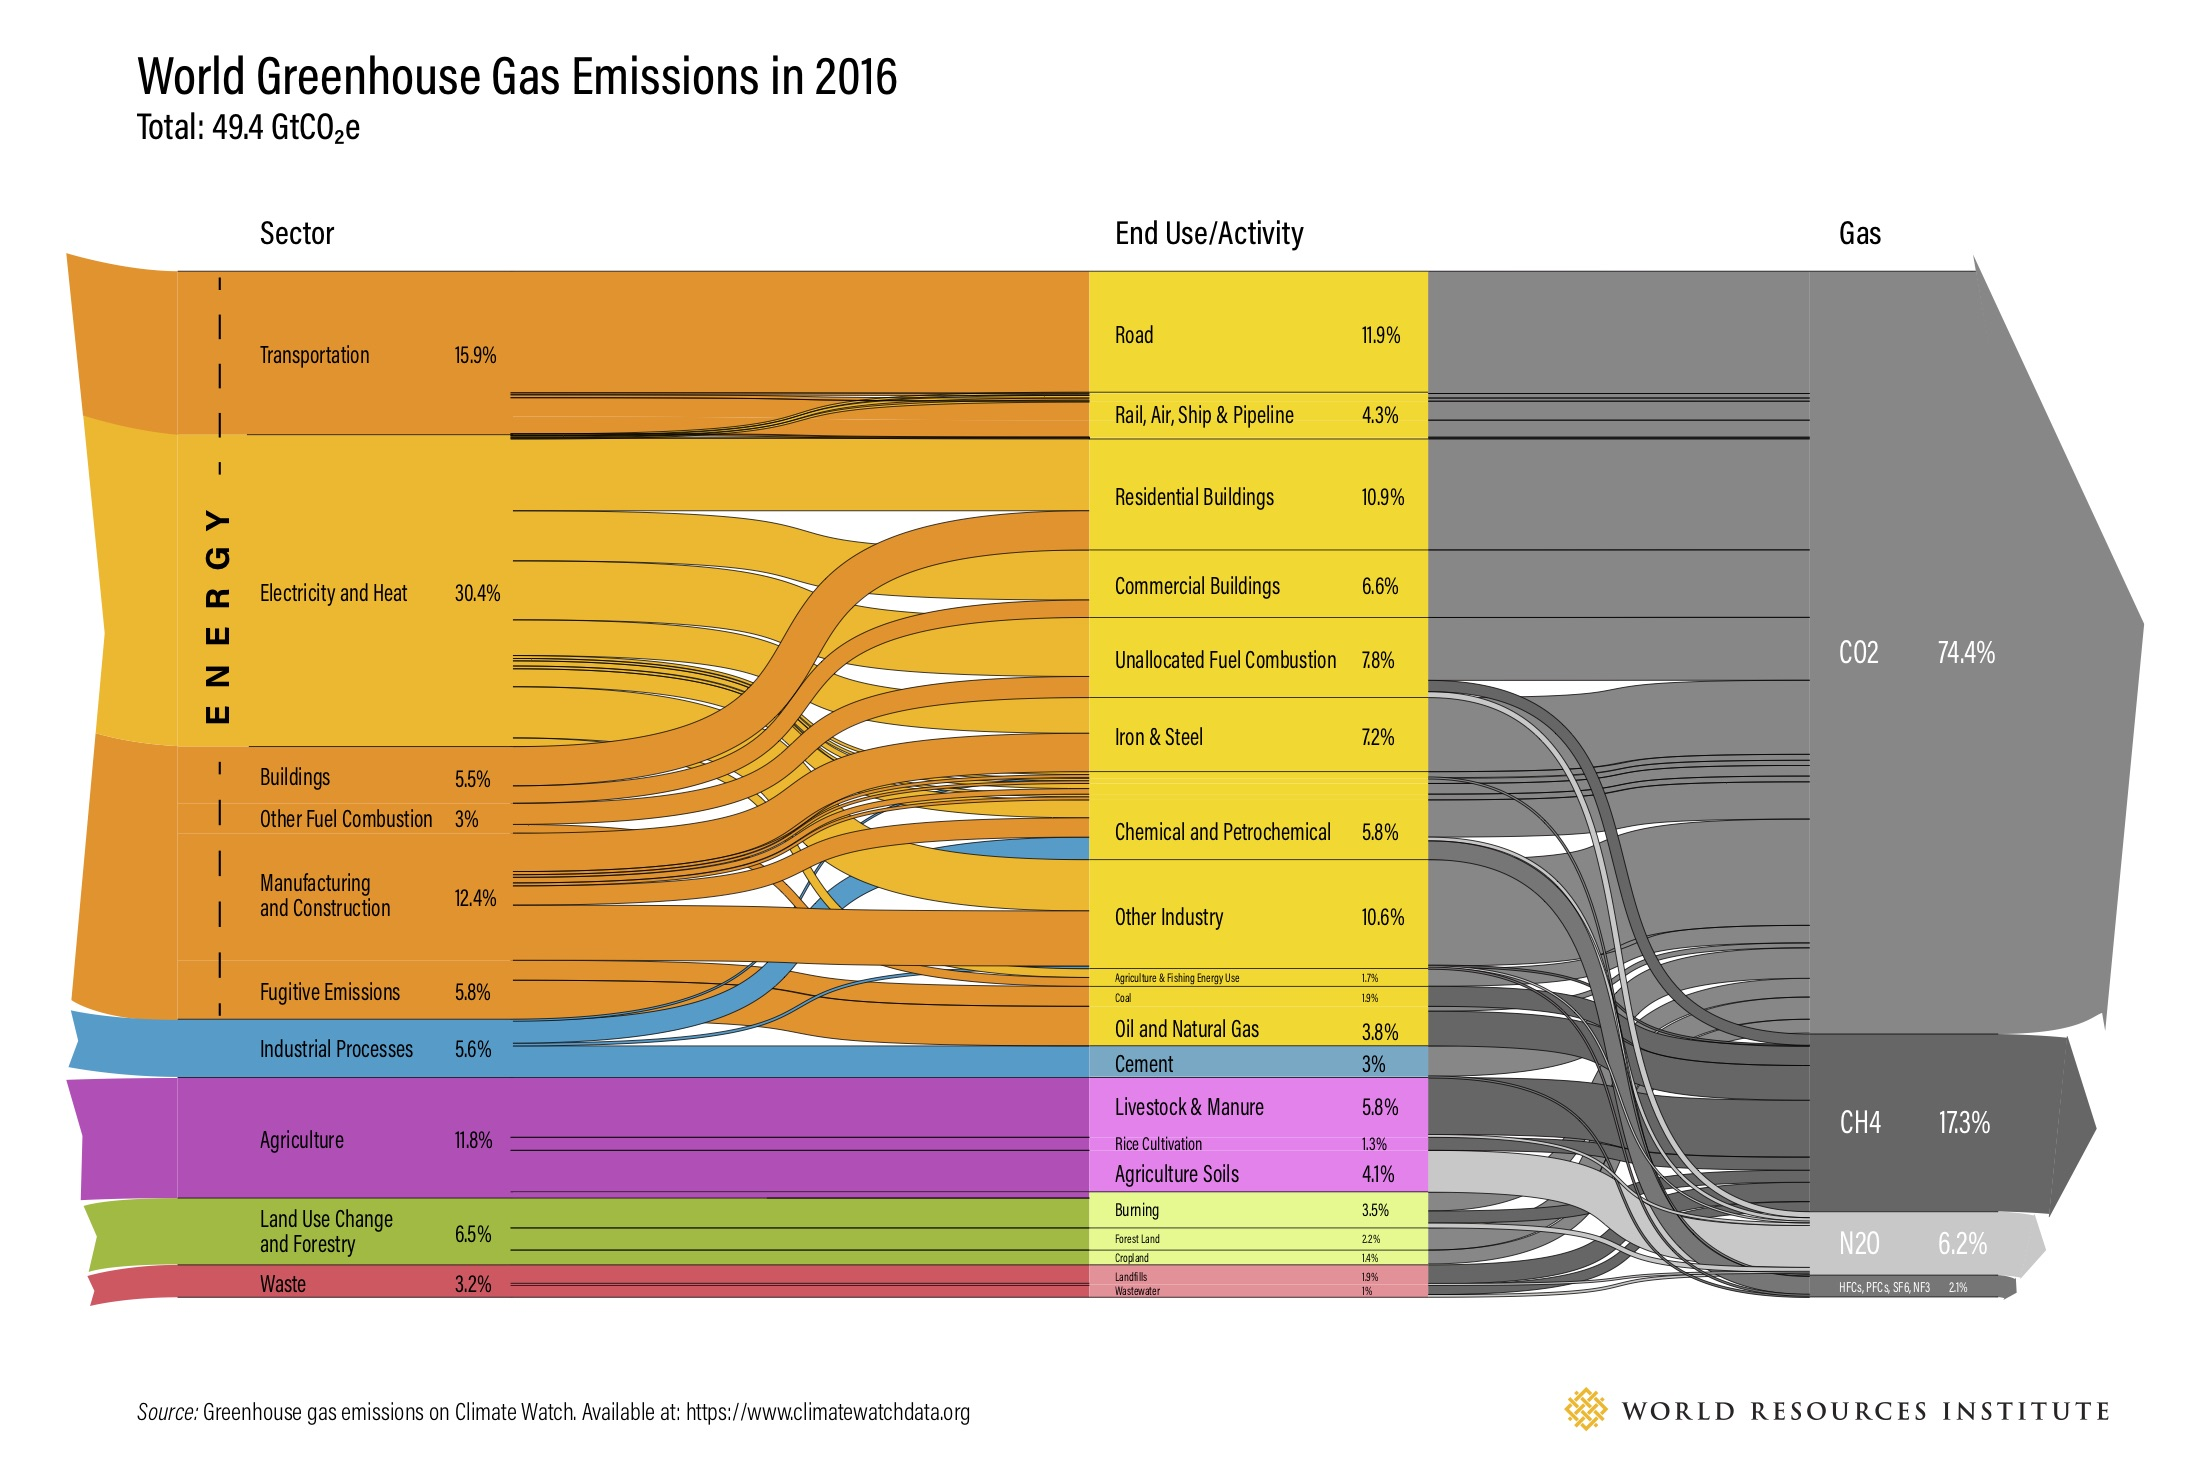 World Greenhouse Gas Emissions 2005, by usage or industry - World Resources Institute